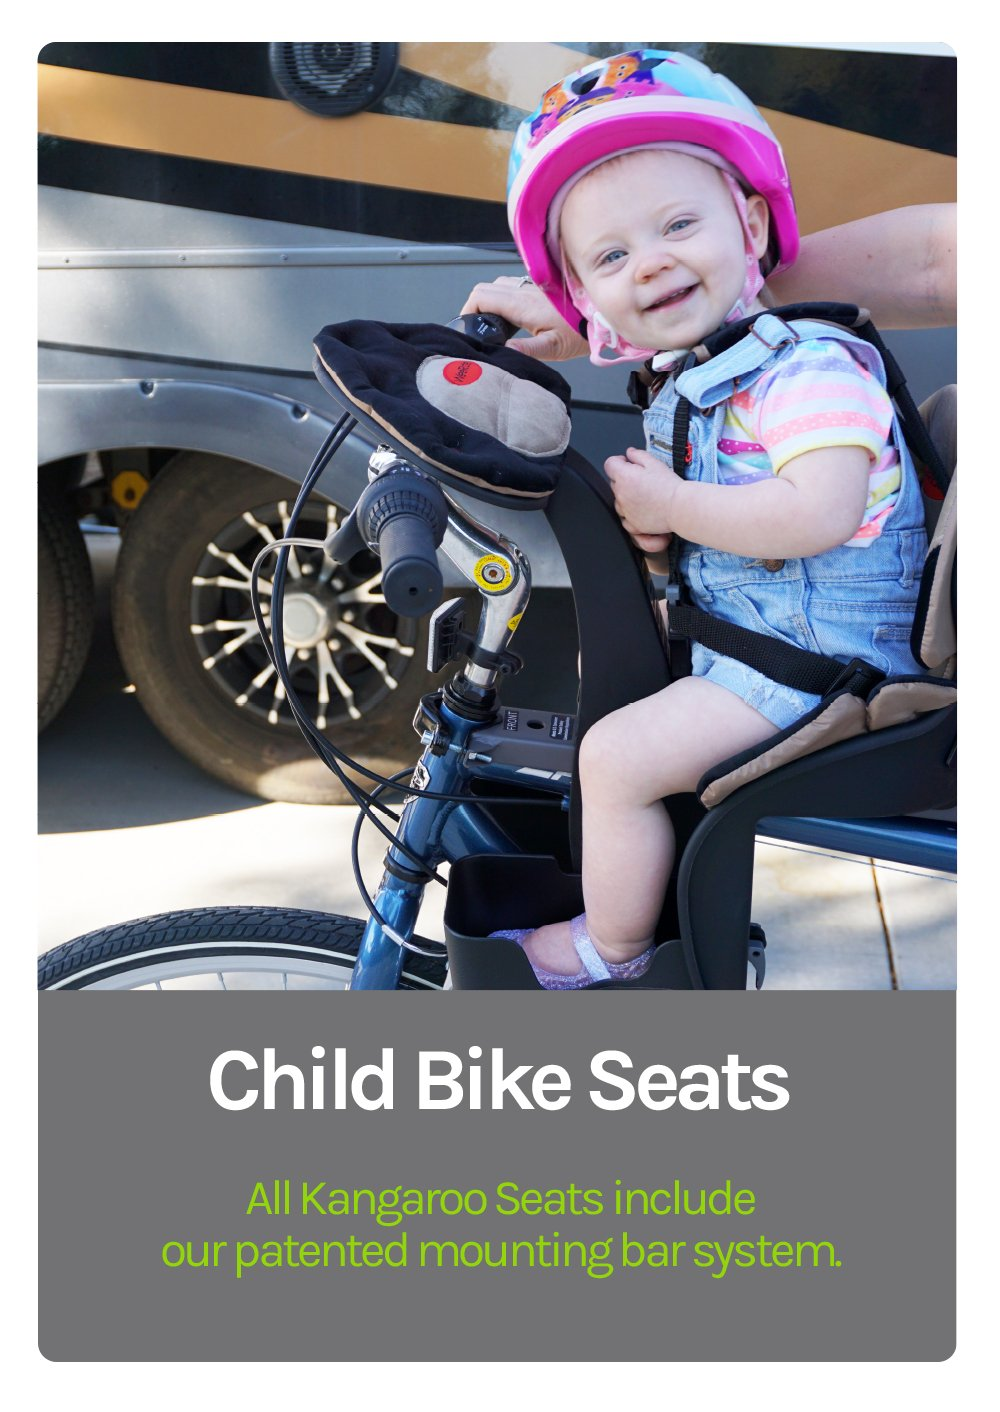 Child Bike Seats - All Kangaroo Seats include our patented mounting bar system. Little girl smiling big on her Brown Kangaroo Seat